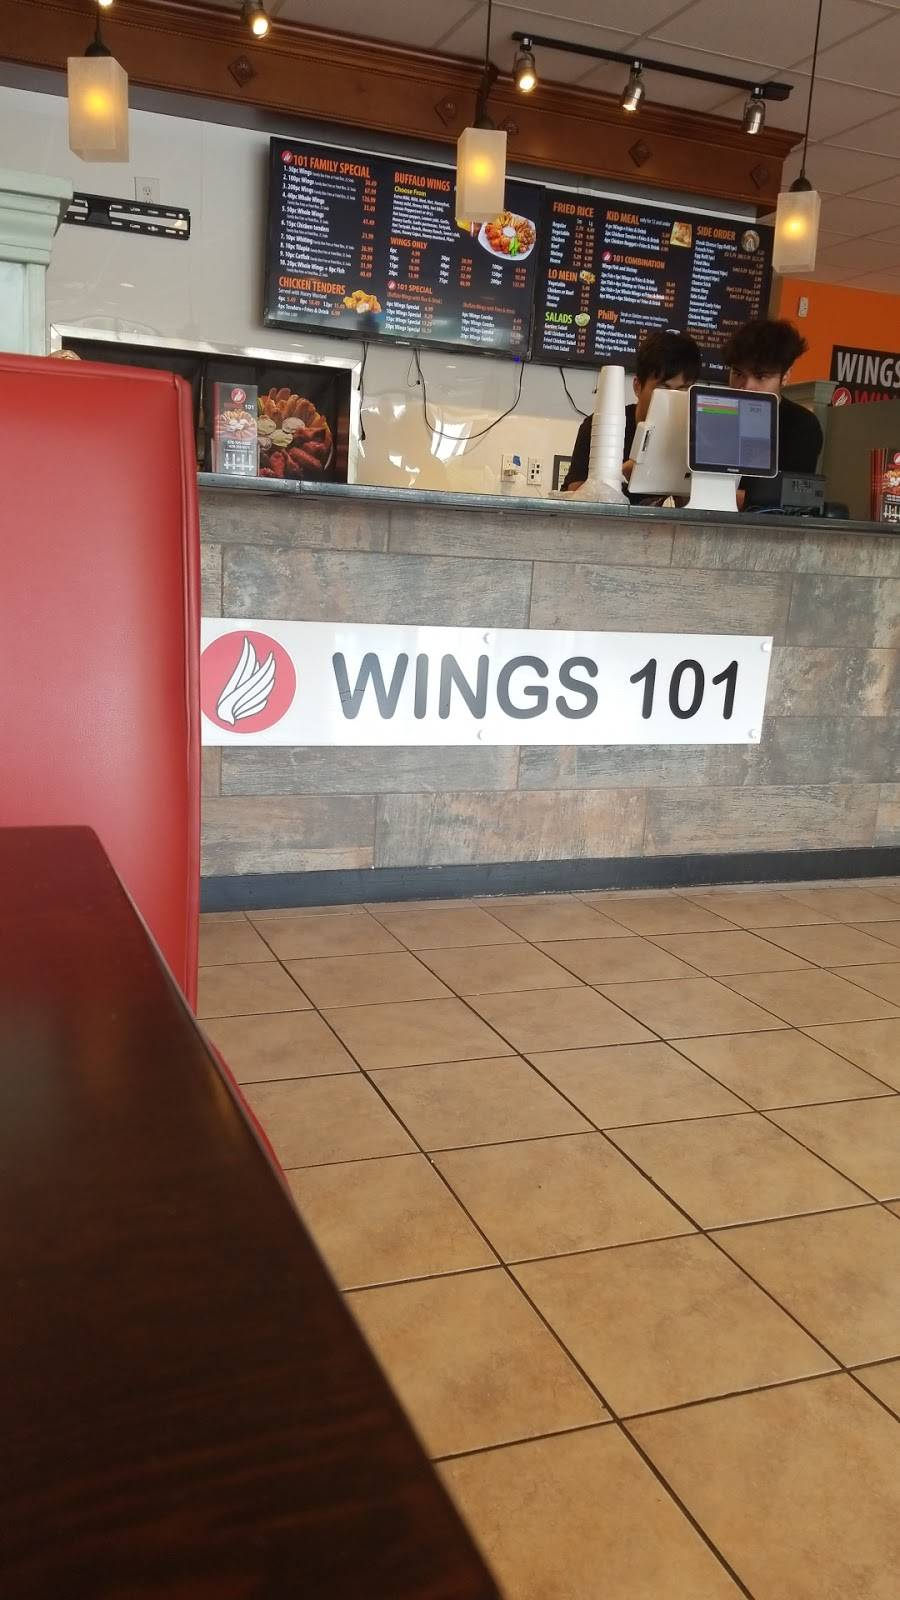 Wings 101 | restaurant | 5653 Memorial Dr, Stone Mountain, GA 30083, USA | 6787059383 OR +1 678-705-9383